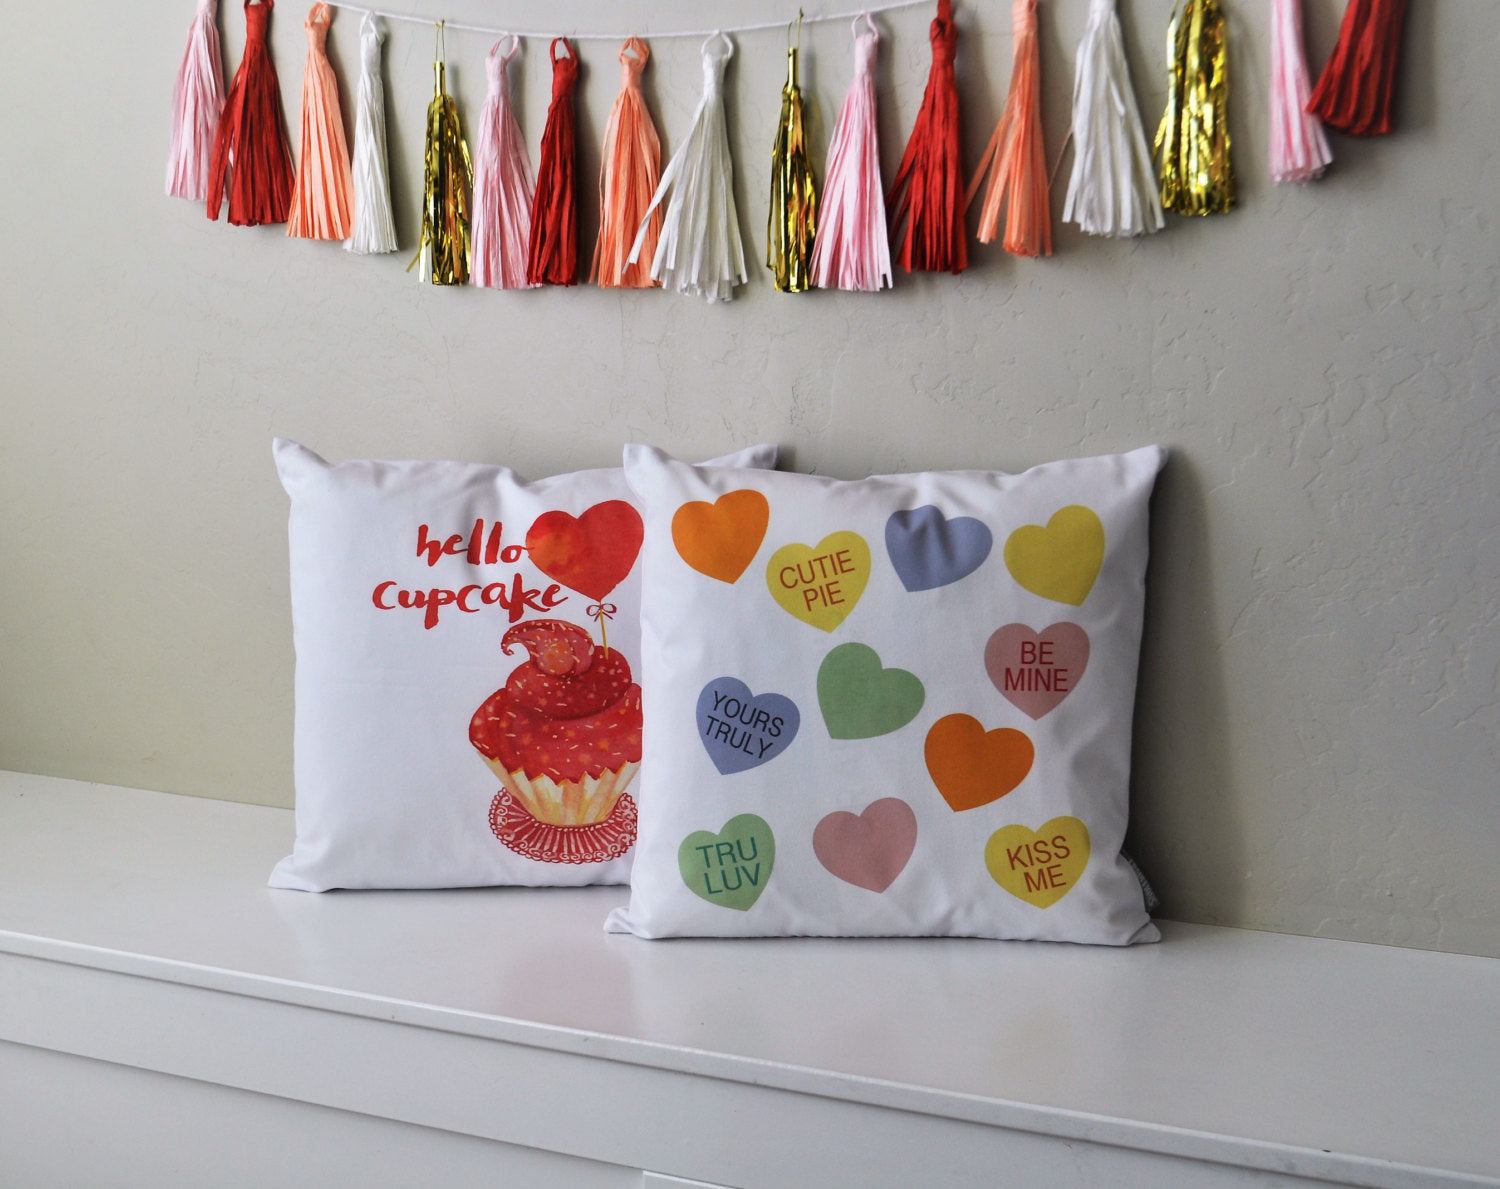 SALE, Valentines Pillow Cover, Valentines Decoration, 18x18 Pillow Cover, Candy hearts, Conversation hearts